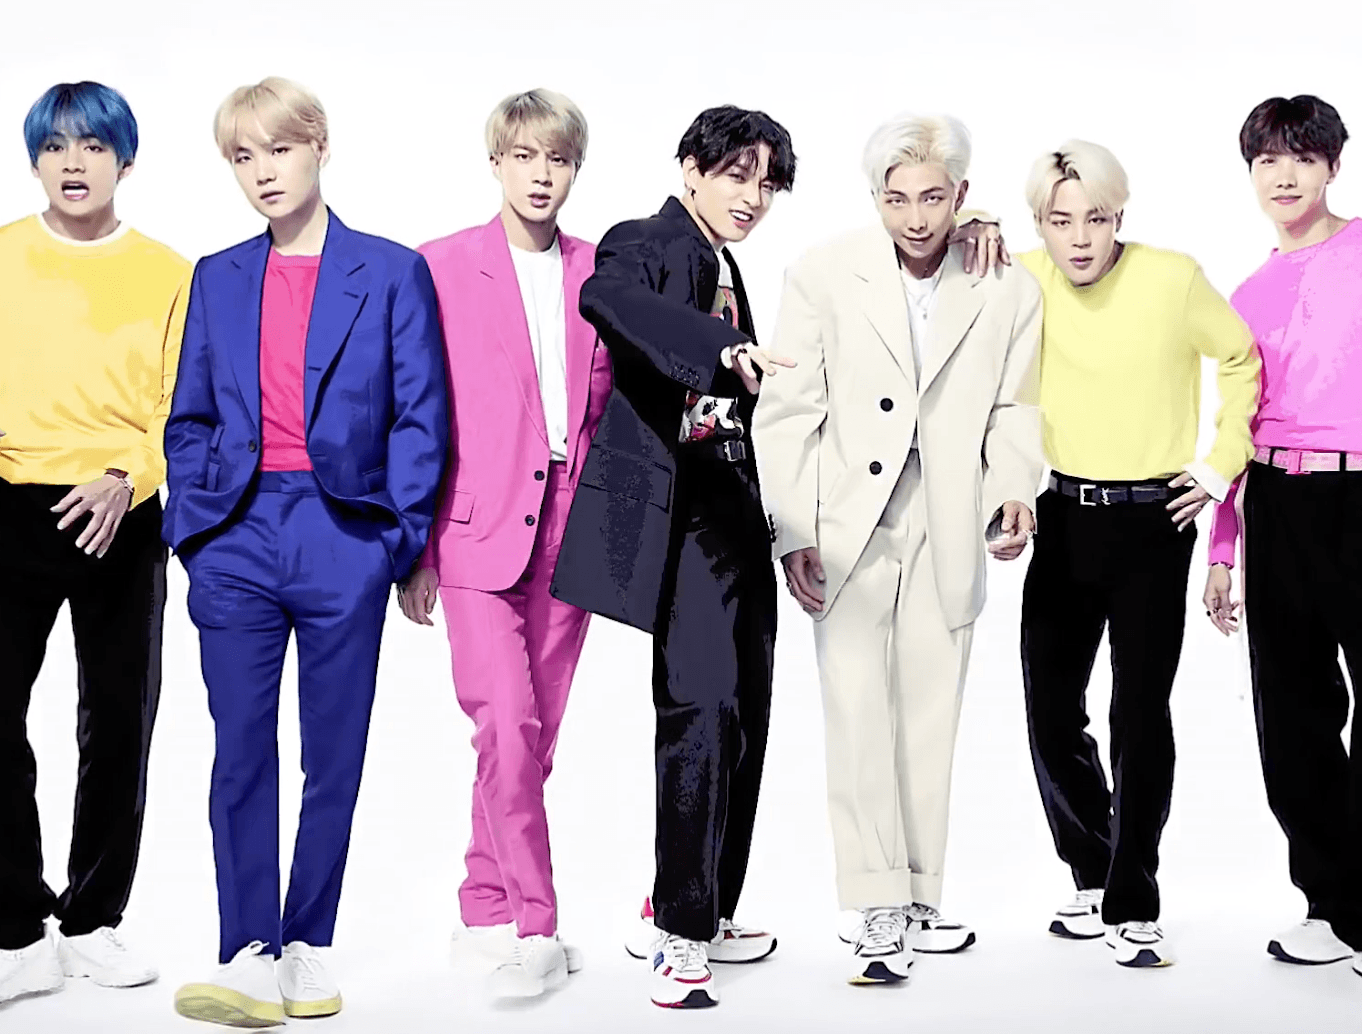 Stream iHeartRadio LIVE with BTS LIVE on LiveXLive - Premium Live Music